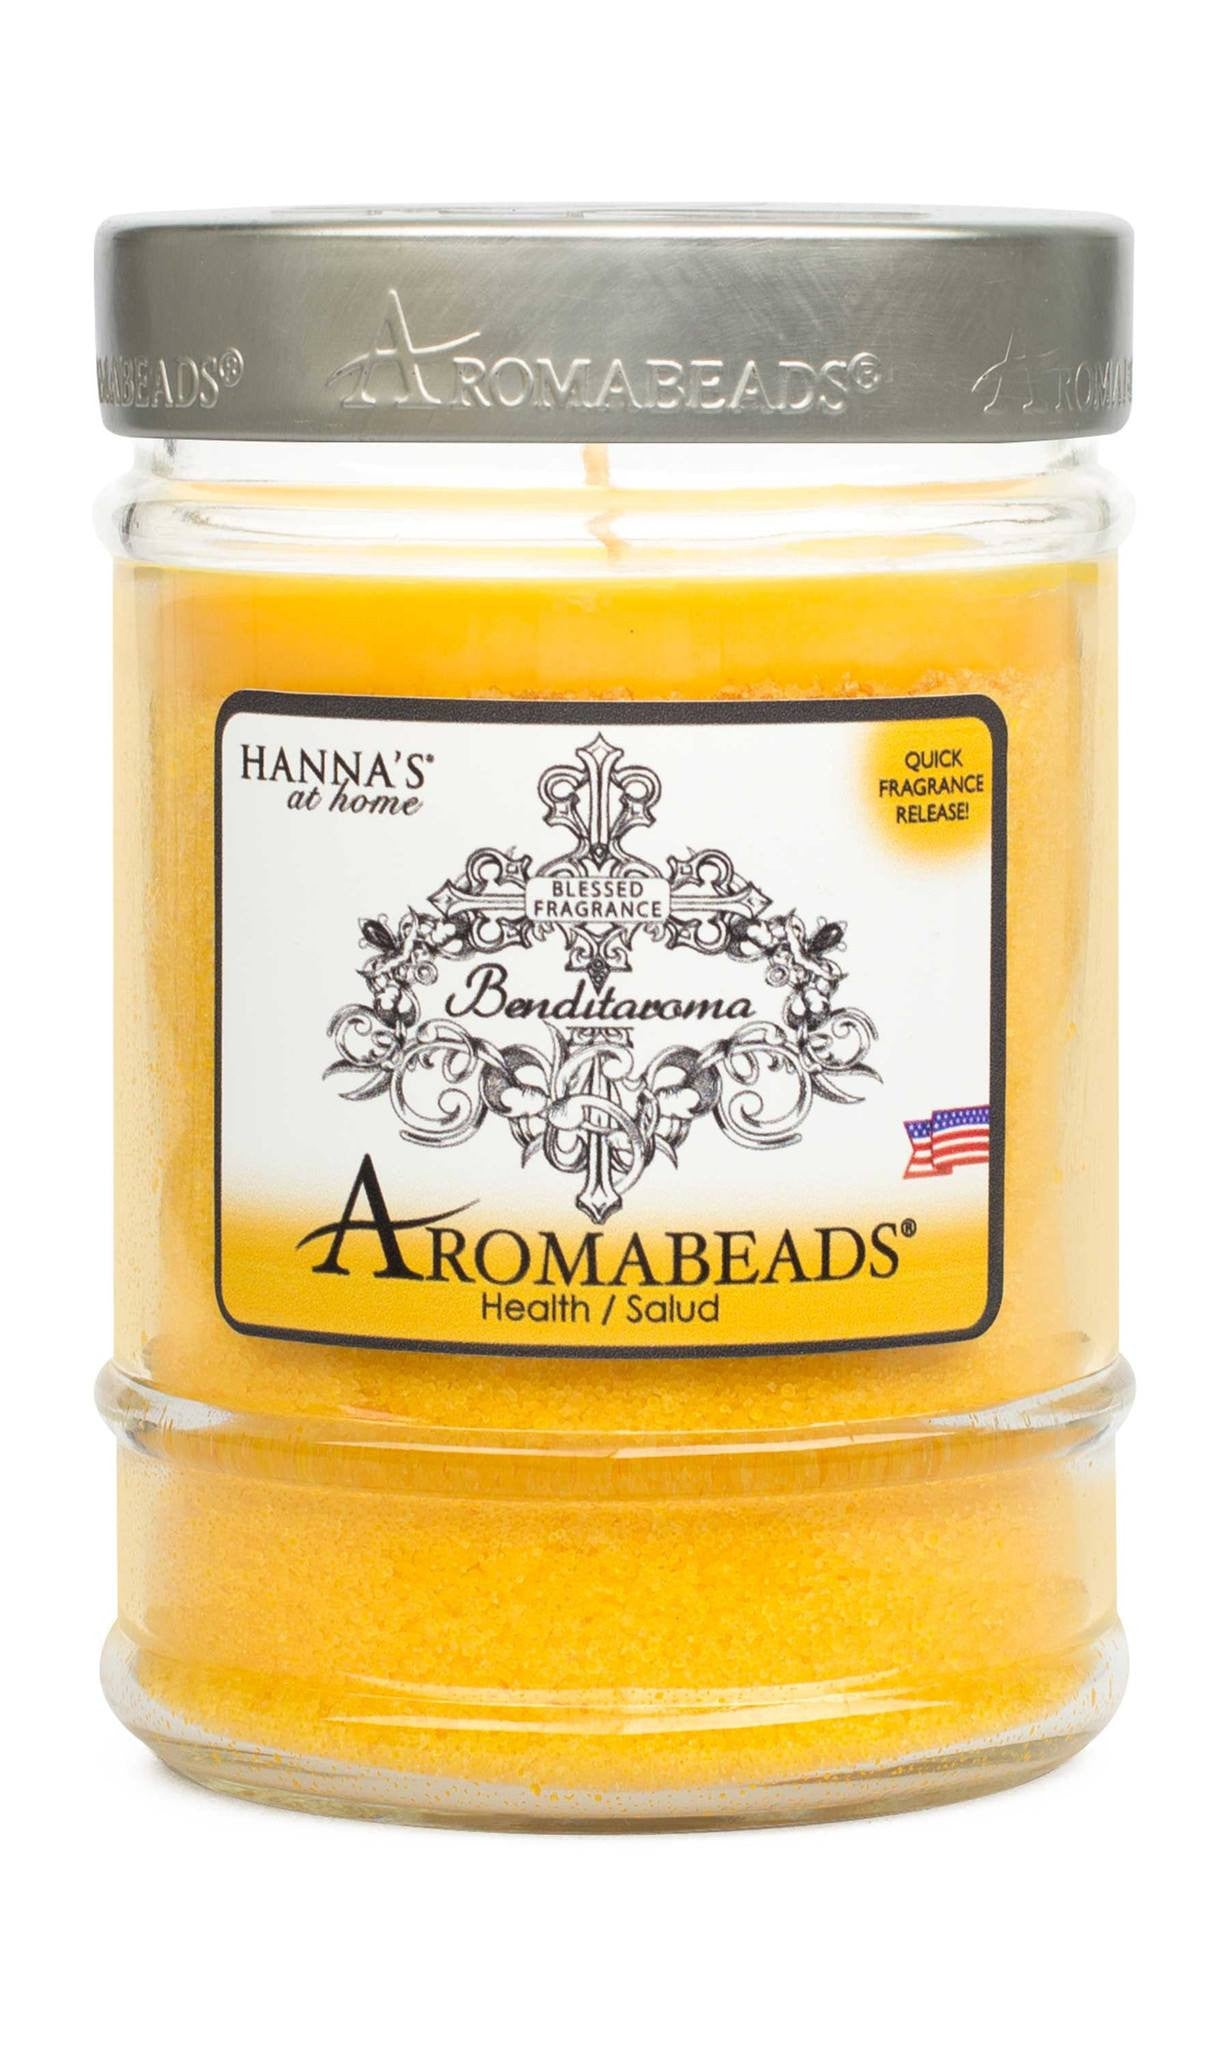 Benditaroma Aromabeads Health Scented Canister Candle - Candlemart.com